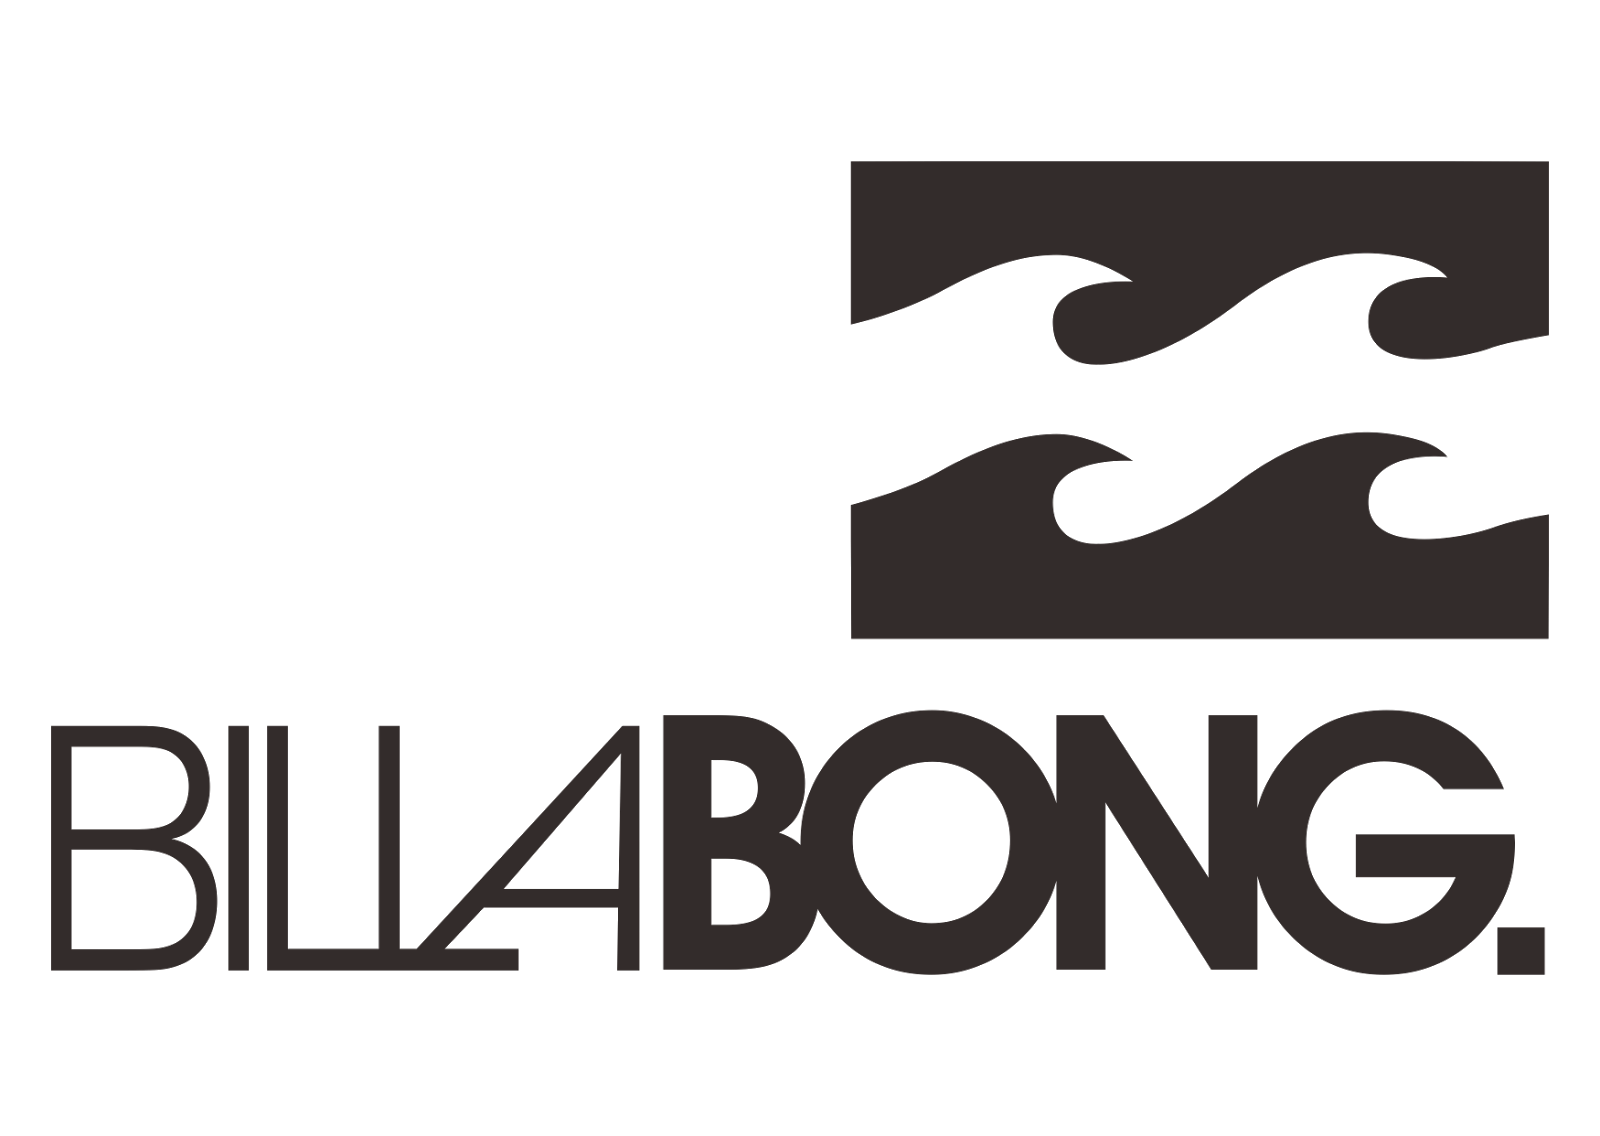 Urs Logo Vector Free Download Billabong Logo Vector Download